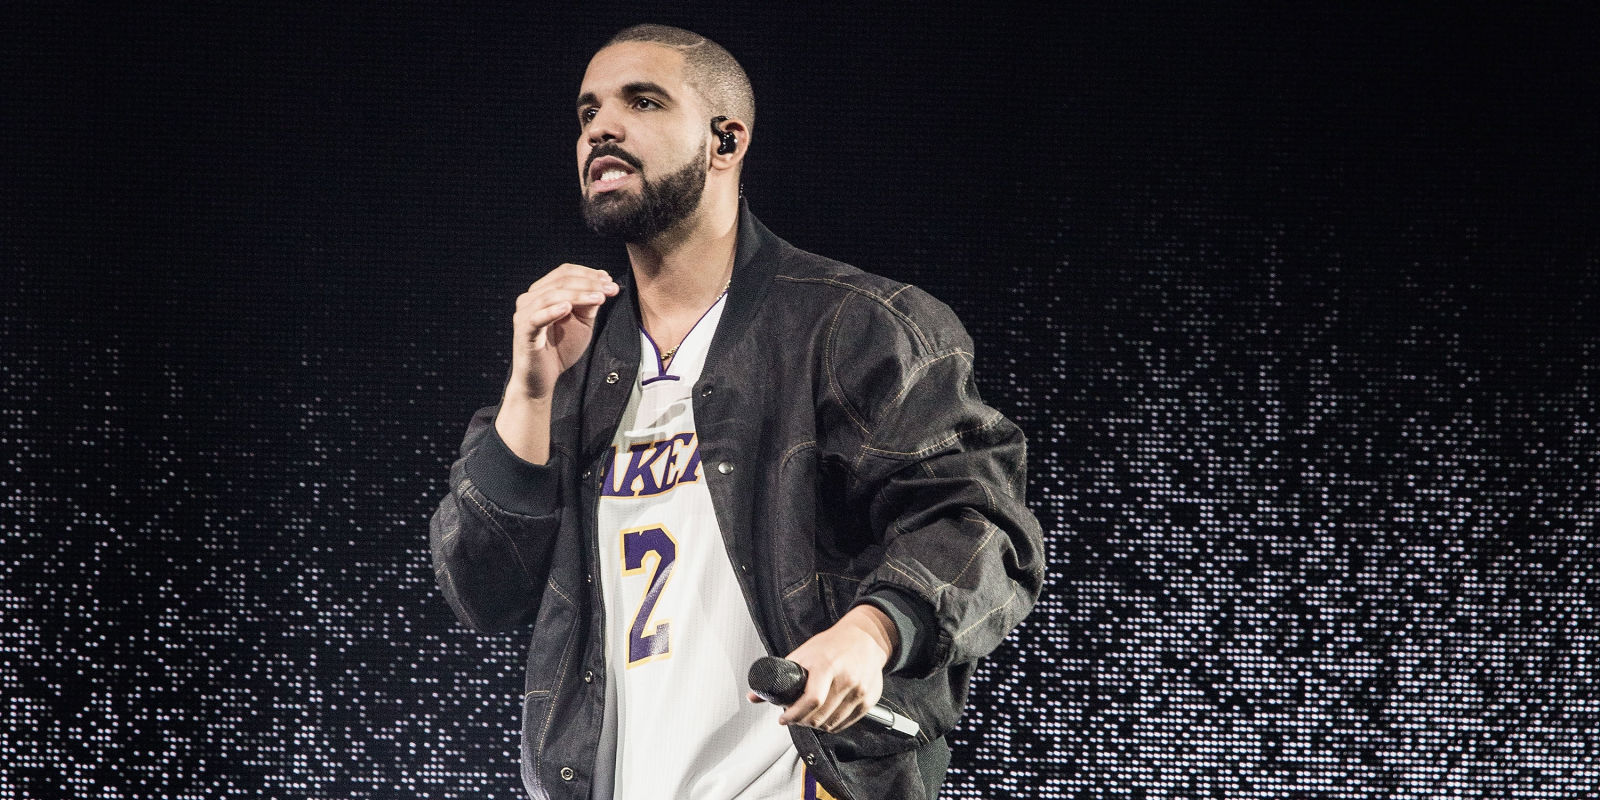 Drake Releases Four New Songs - Drake Announces 'More Life' Album Out December